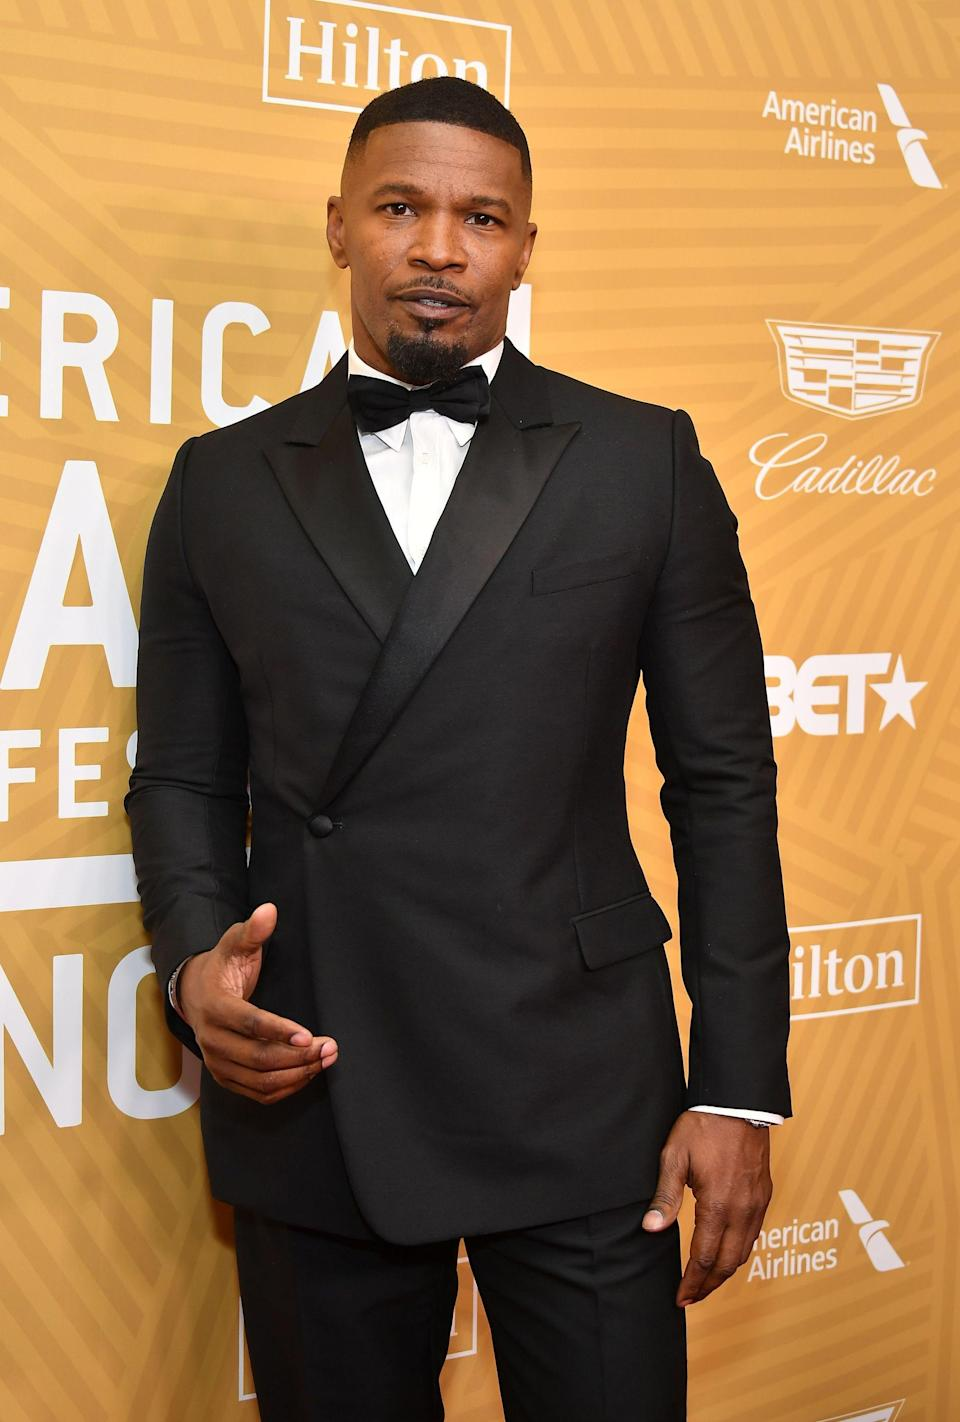 """As catchy as """"Jamie Foxx"""" is, you may not be surprised that it's not the birth name of one Eric Marlon Bishop. Foxx changed his name as a strategic move: After he noticed women were often called on first to perform at comedy clubs, he began writing down gender-neutral names like Tracey, Stacey, and Jamie—eventually Jamie stuck."""